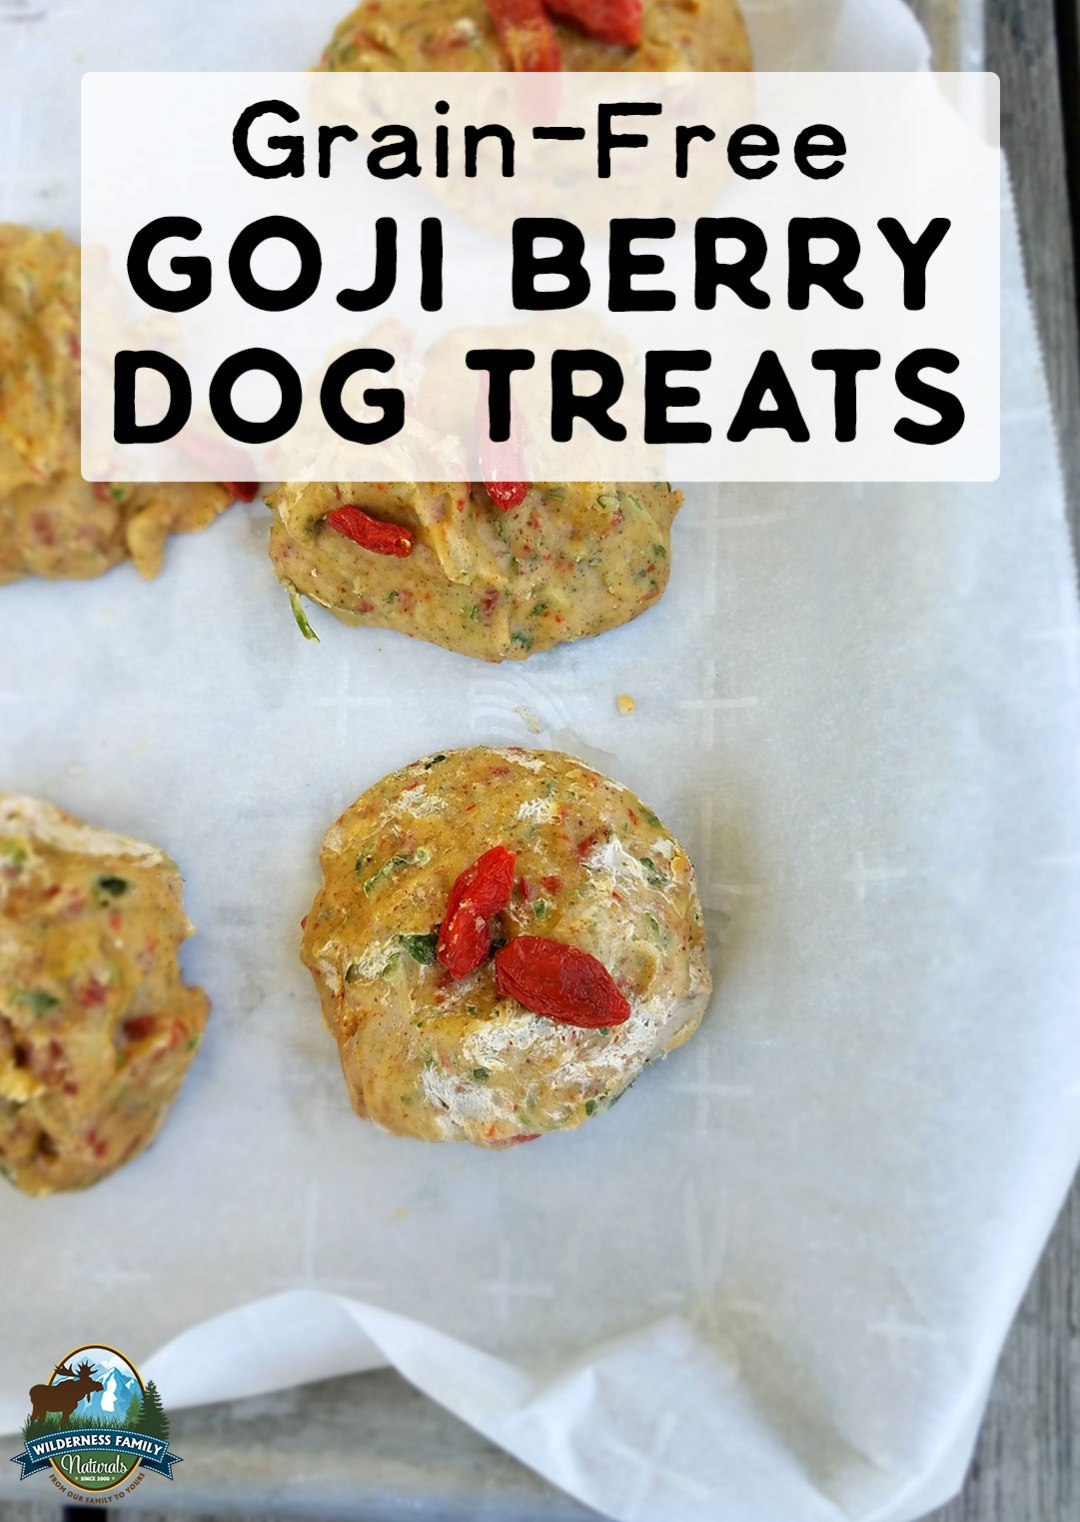 Grain-Free Goji Berry Dog Treats | You're just 4 ingredients and 20 minutes away from Grain-Free Goji Berry Dog Treats! Stored in the freezer, they are a cooling treat on hot summer days and are full of nourishing coconut oil and antioxidants for your fur baby! | WildernessFamilyNaturals.com